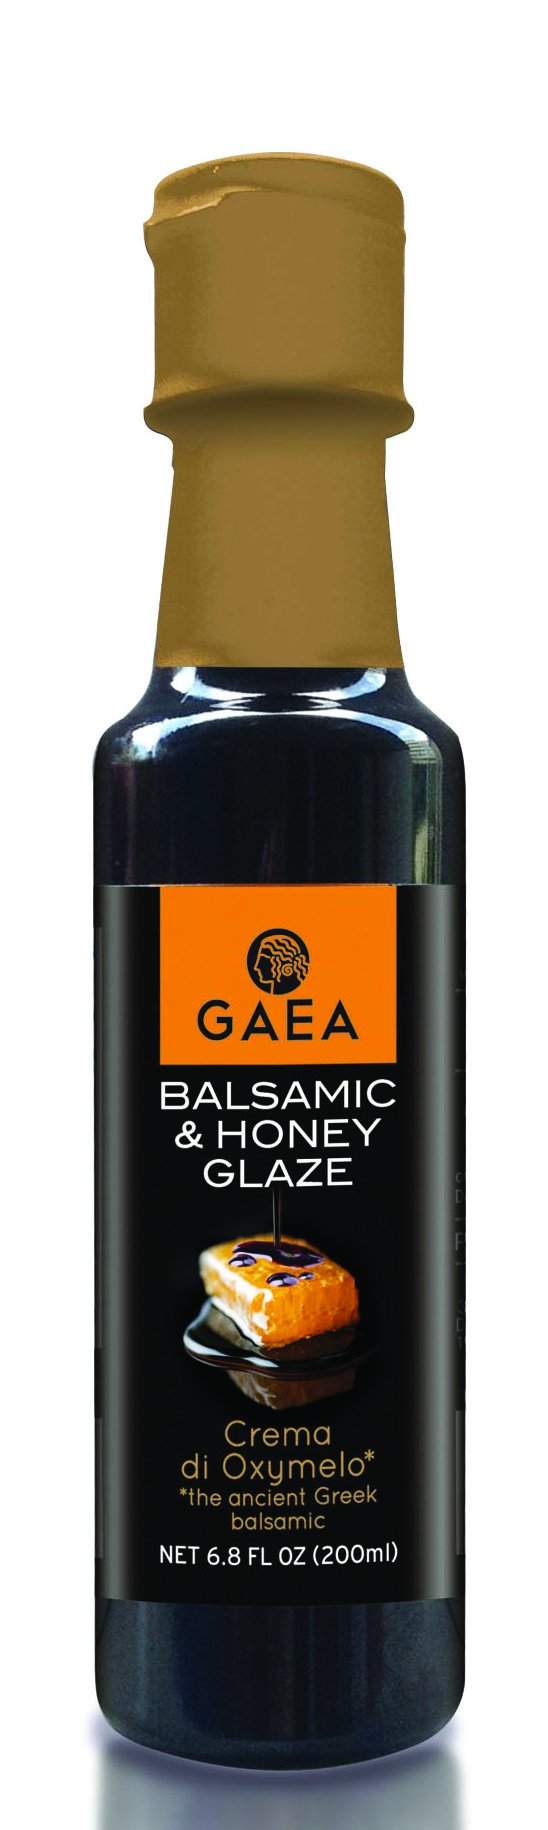 Gaea Balsamic & Honey Glaze